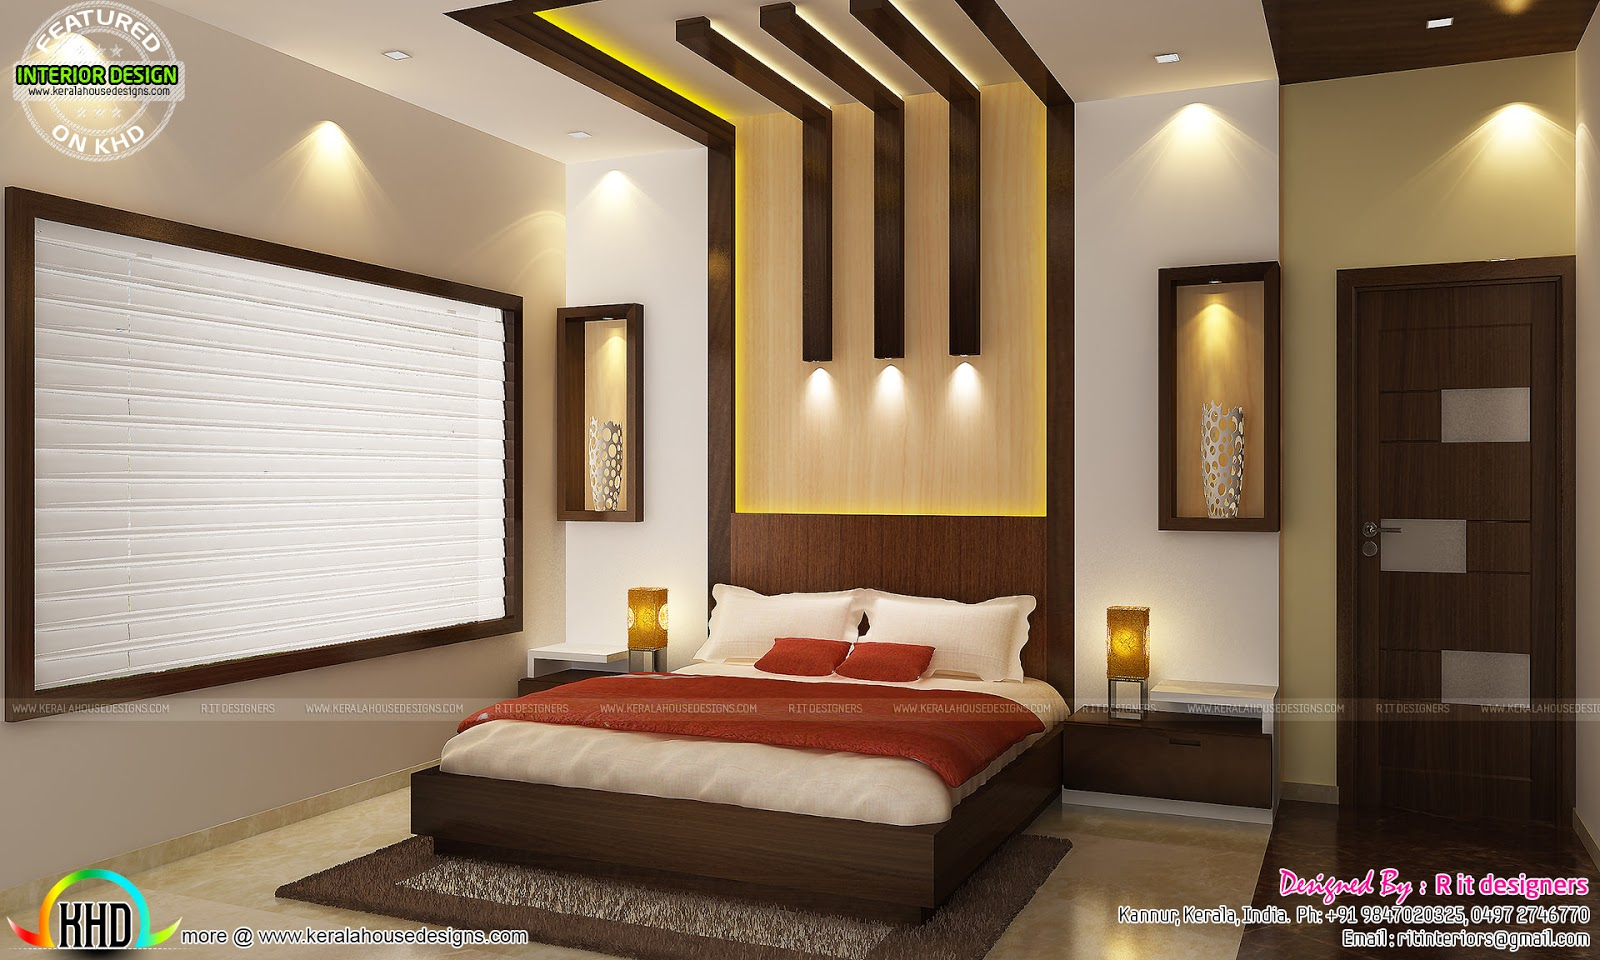 Kitchen living bedroom dining interior decor kerala for Bedroom interior design images